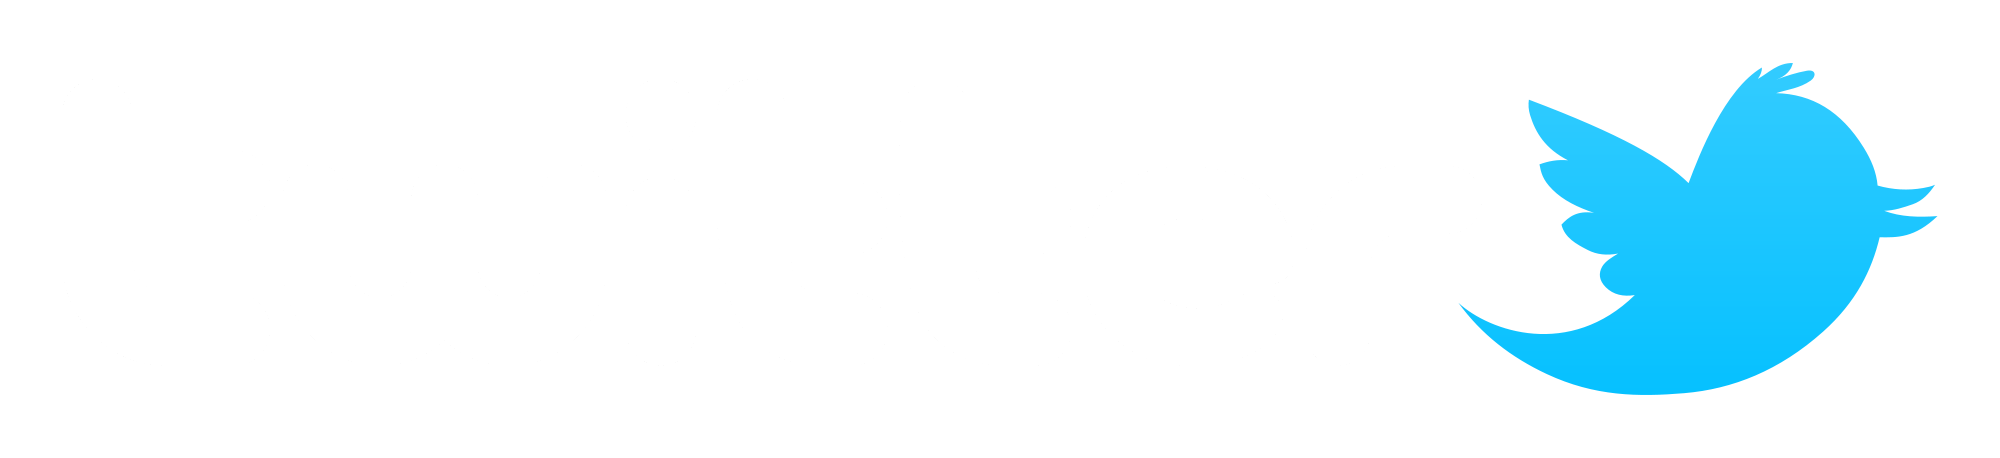 Twitter logo png white. Images free download